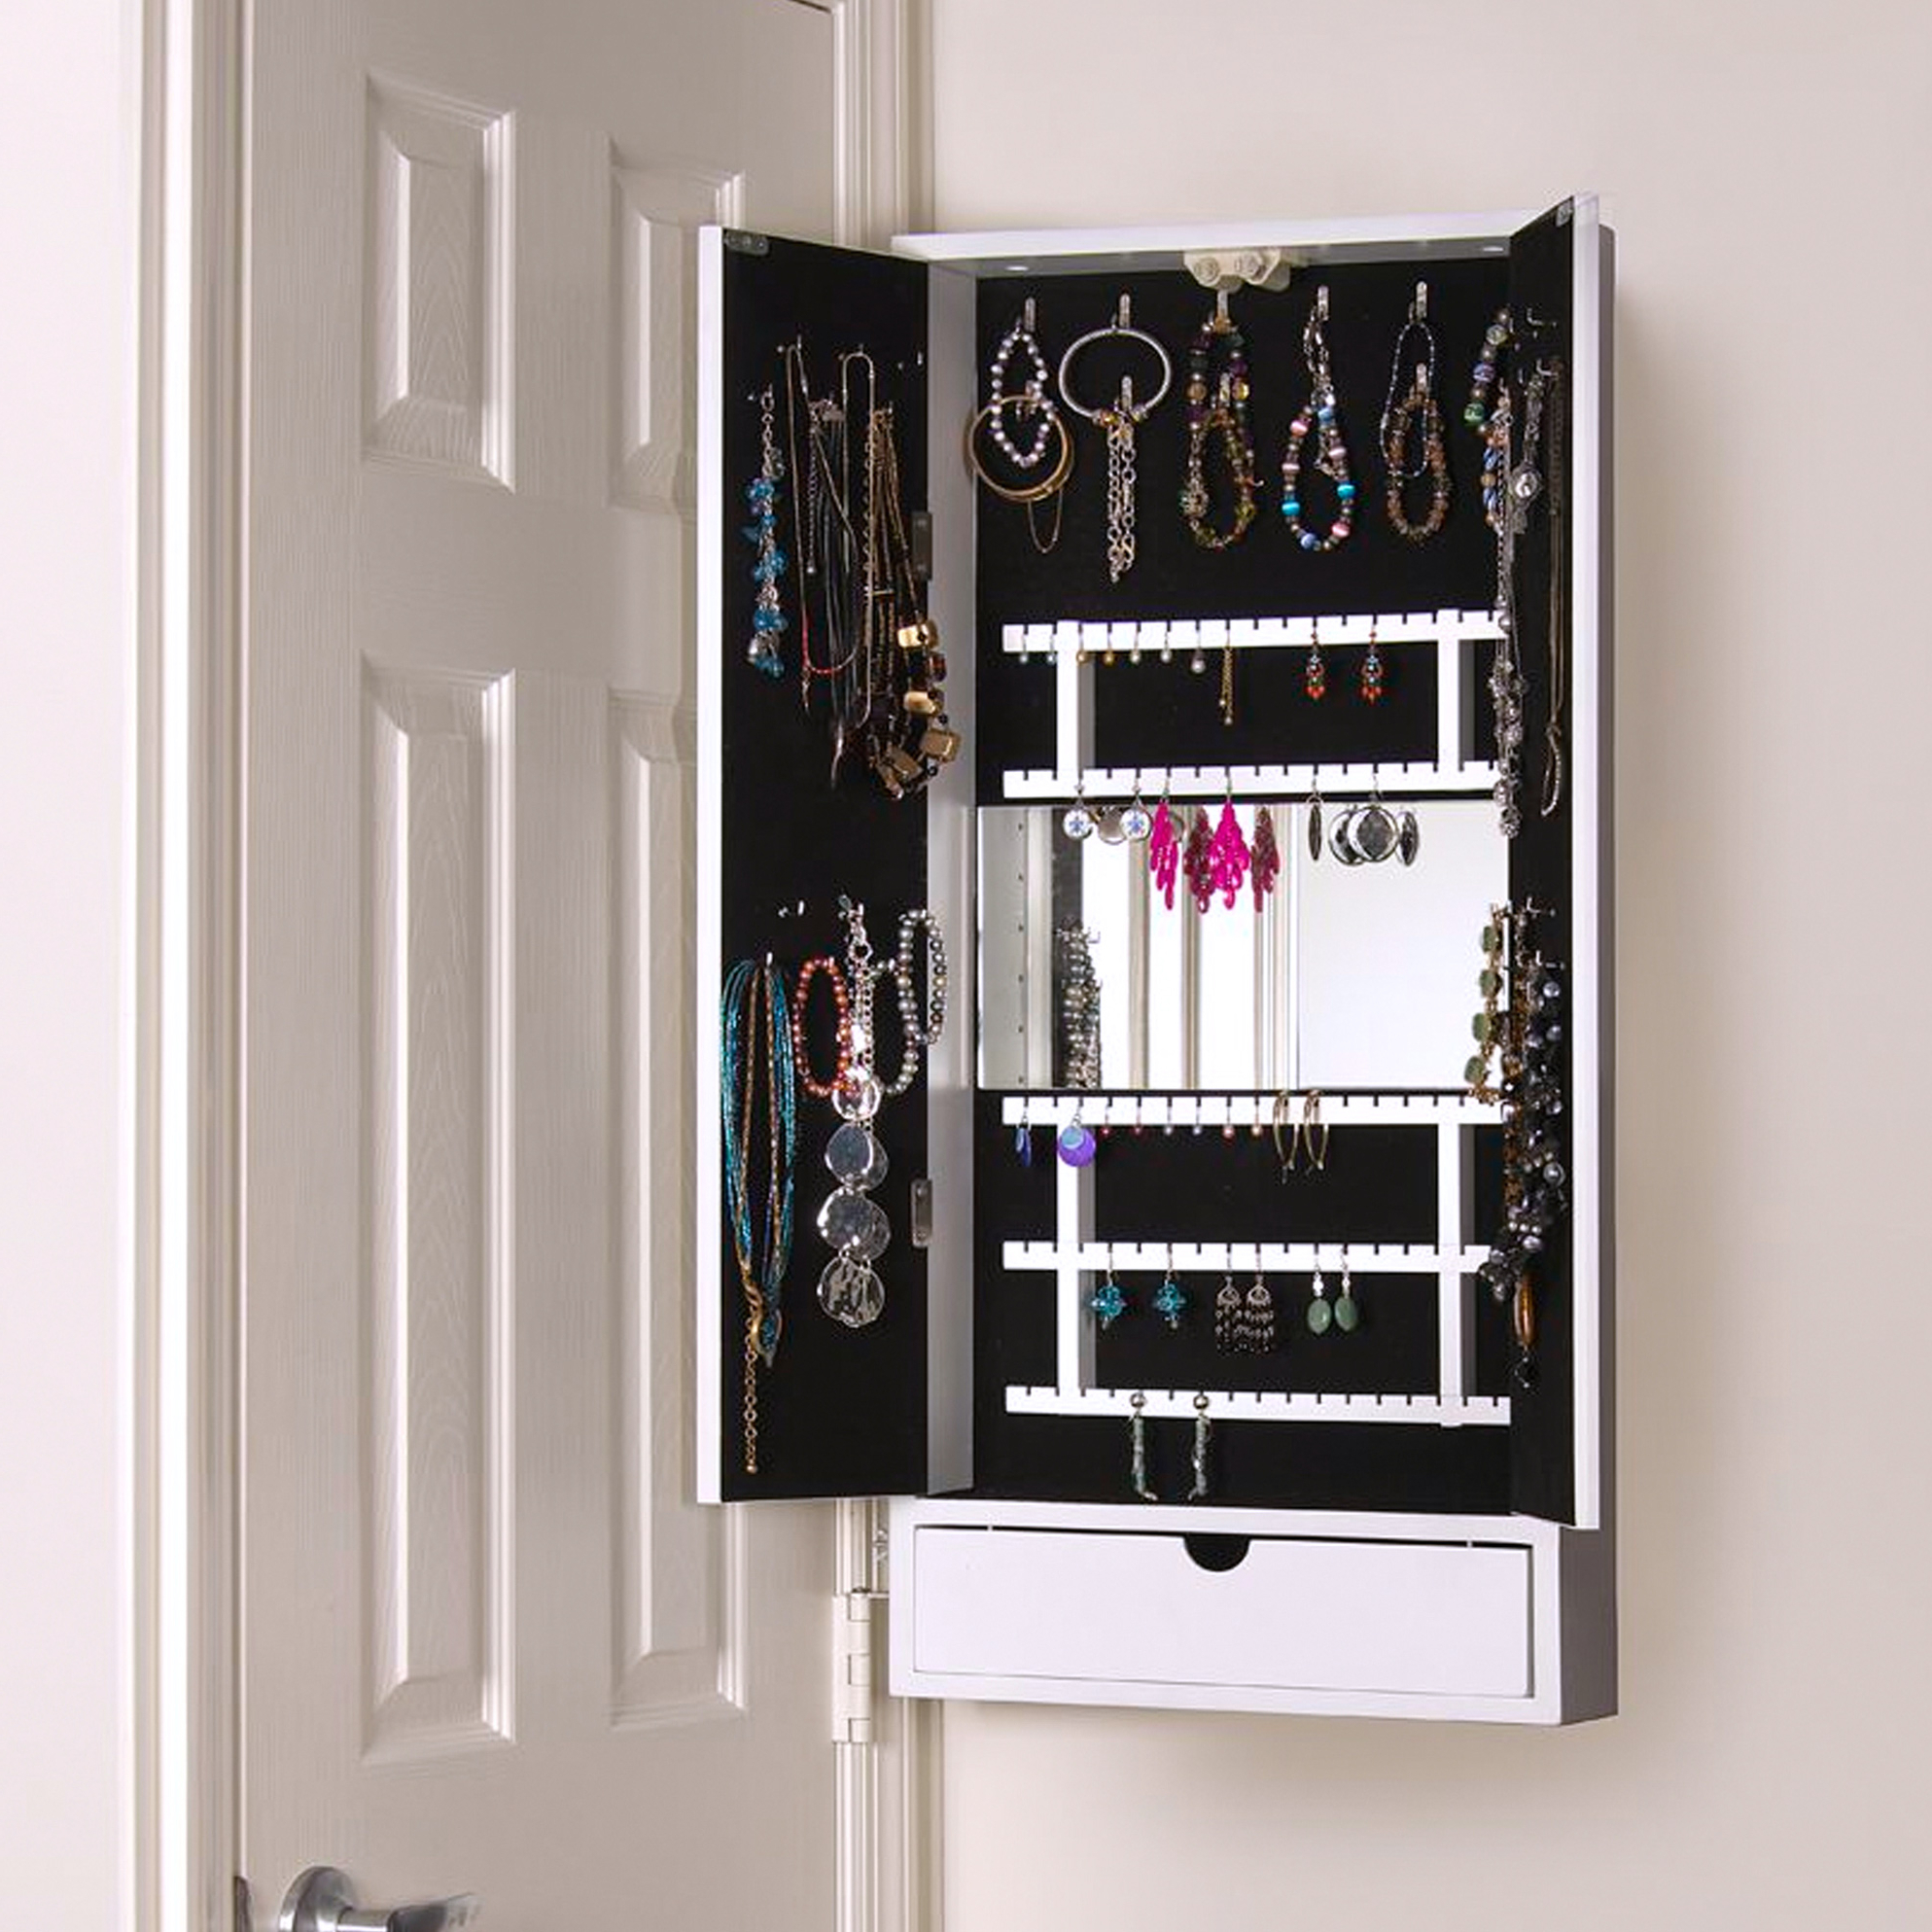 19 Jewelry Cabinets Wall Mounted, Impeccable Mirrored Wall For Well Known Jewelry Box Wall Mirrors (View 1 of 20)